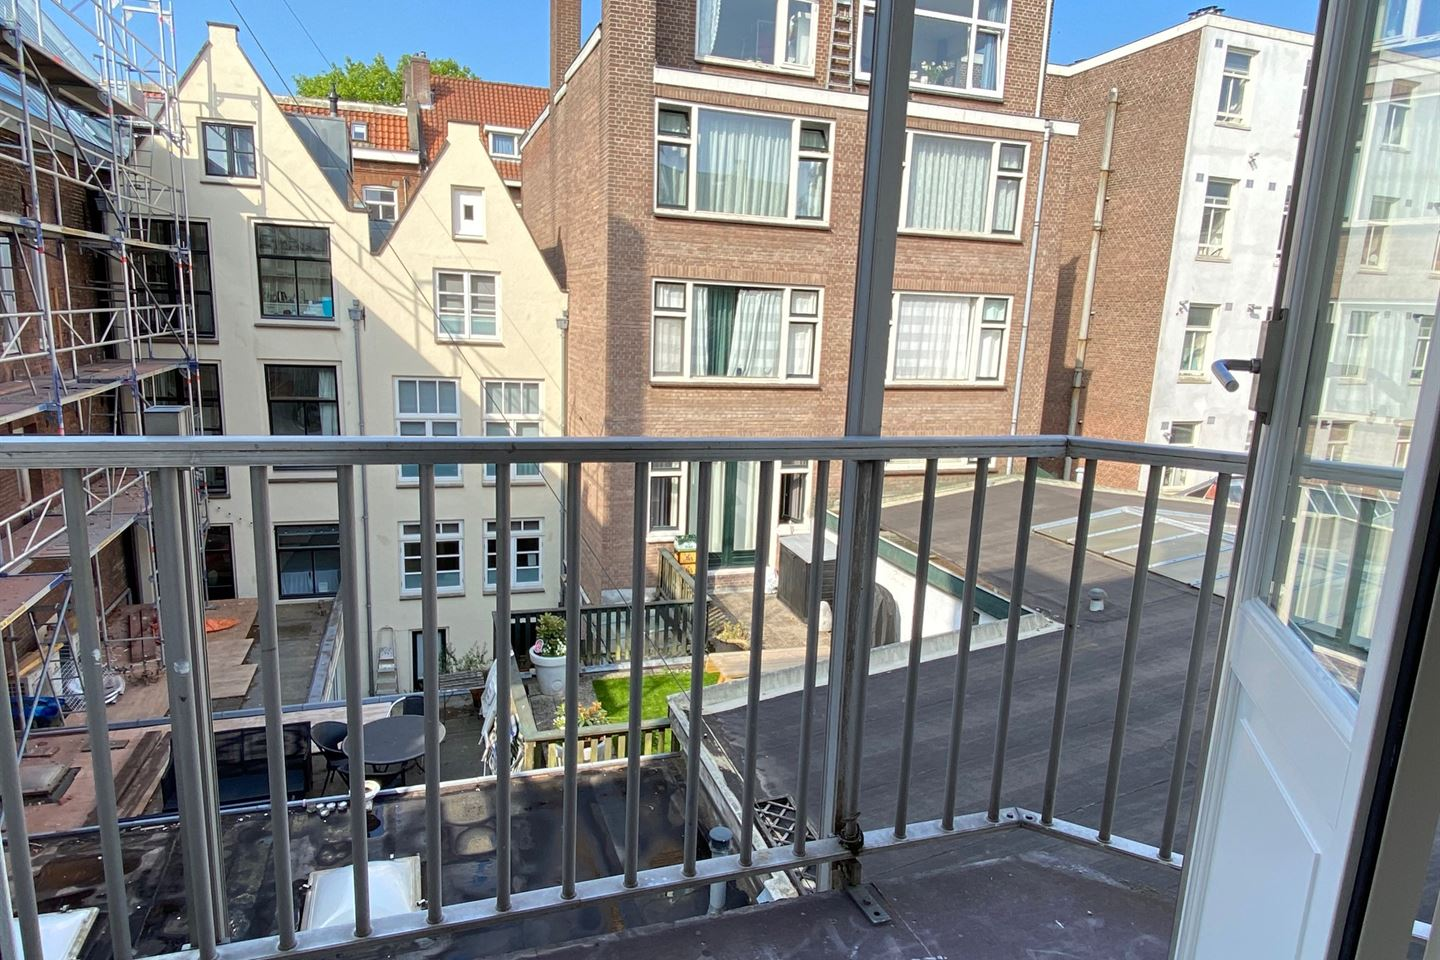 View photo 4 of Lange Leidsedwarsstraat 198 -2